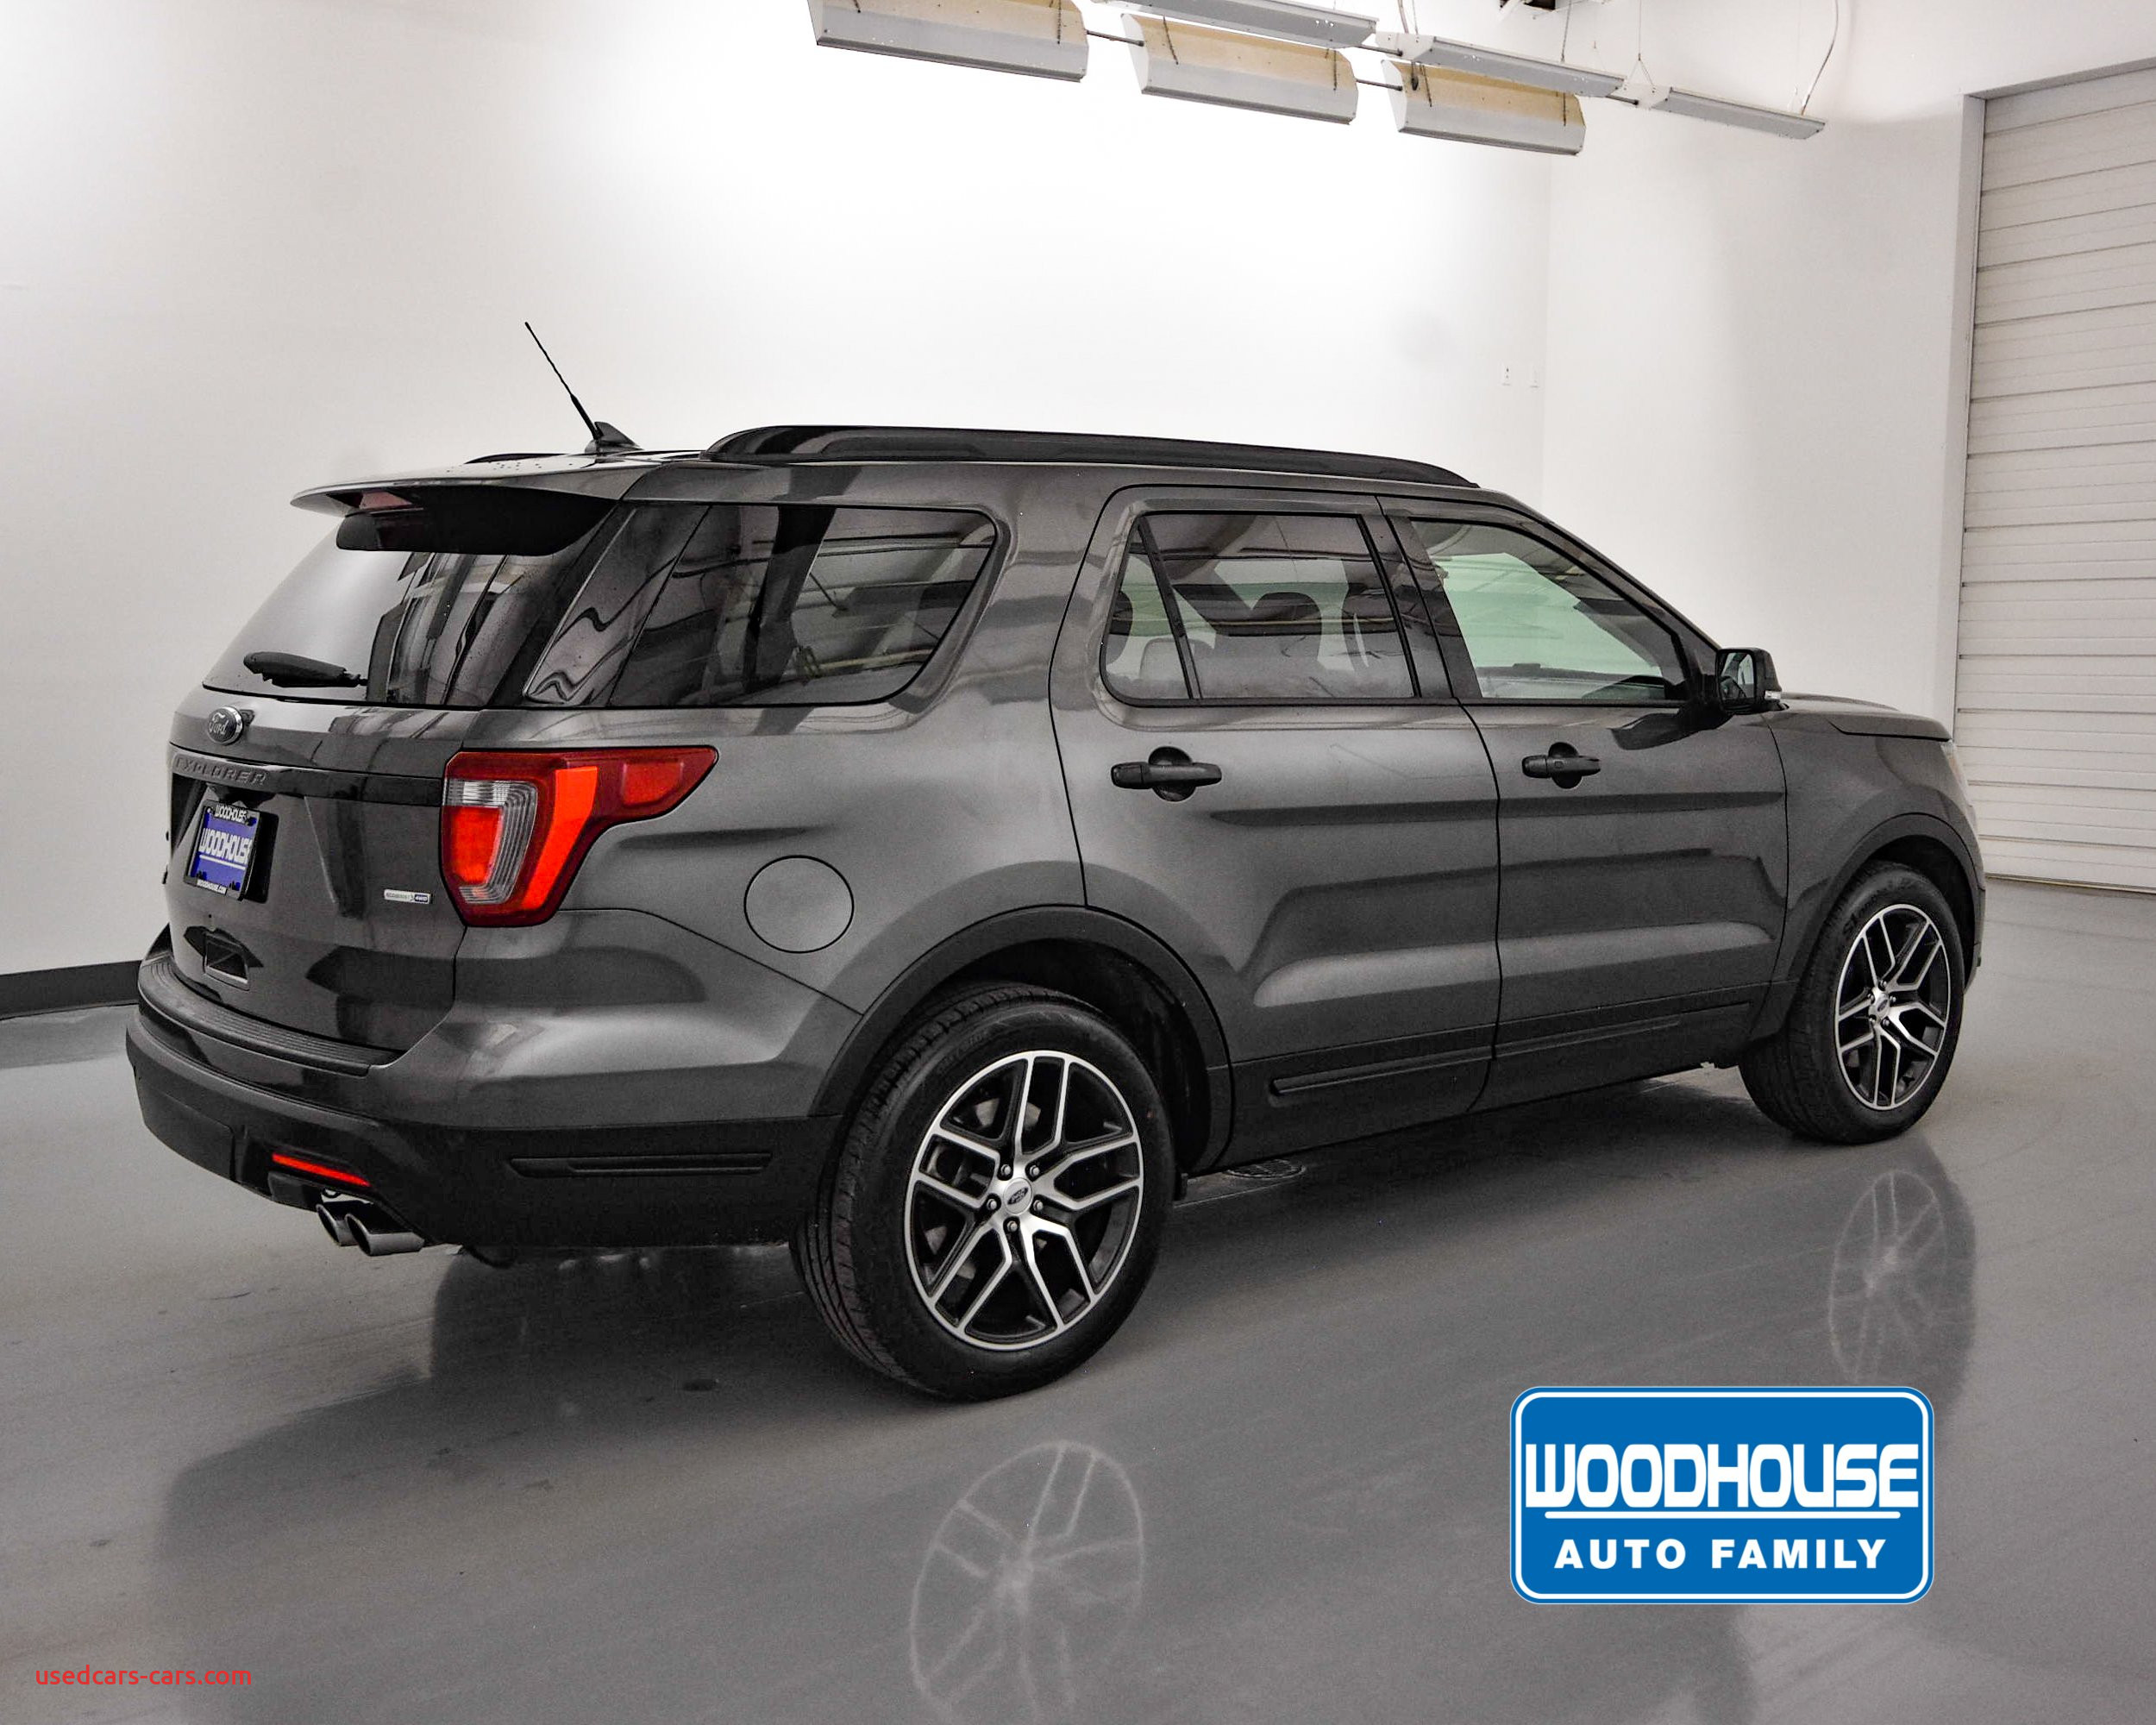 Ford Escape 2020 Quito Motors Elegant Pre Owned 2019 ford Explorer Sport with Navigation & 4wd